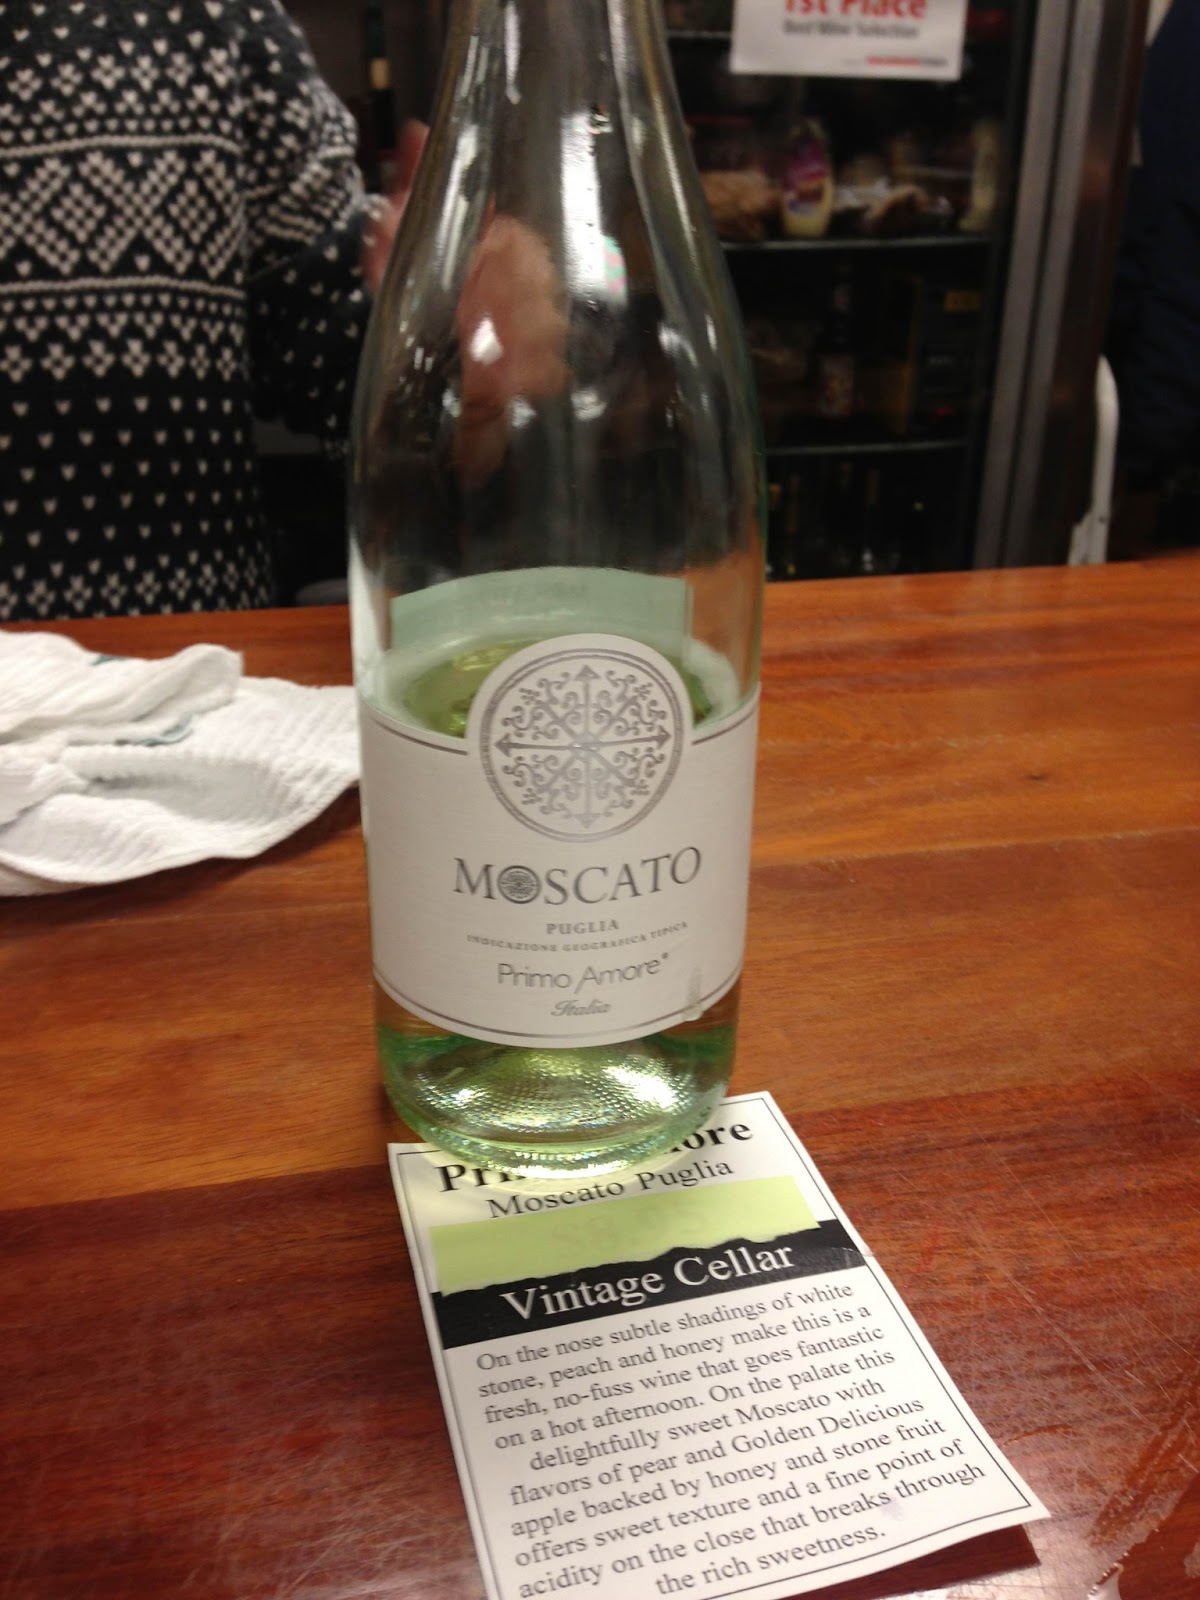 Kelsey drinks wine tasting primo amore moscato puglia - Olive garden moscato primo amore ...